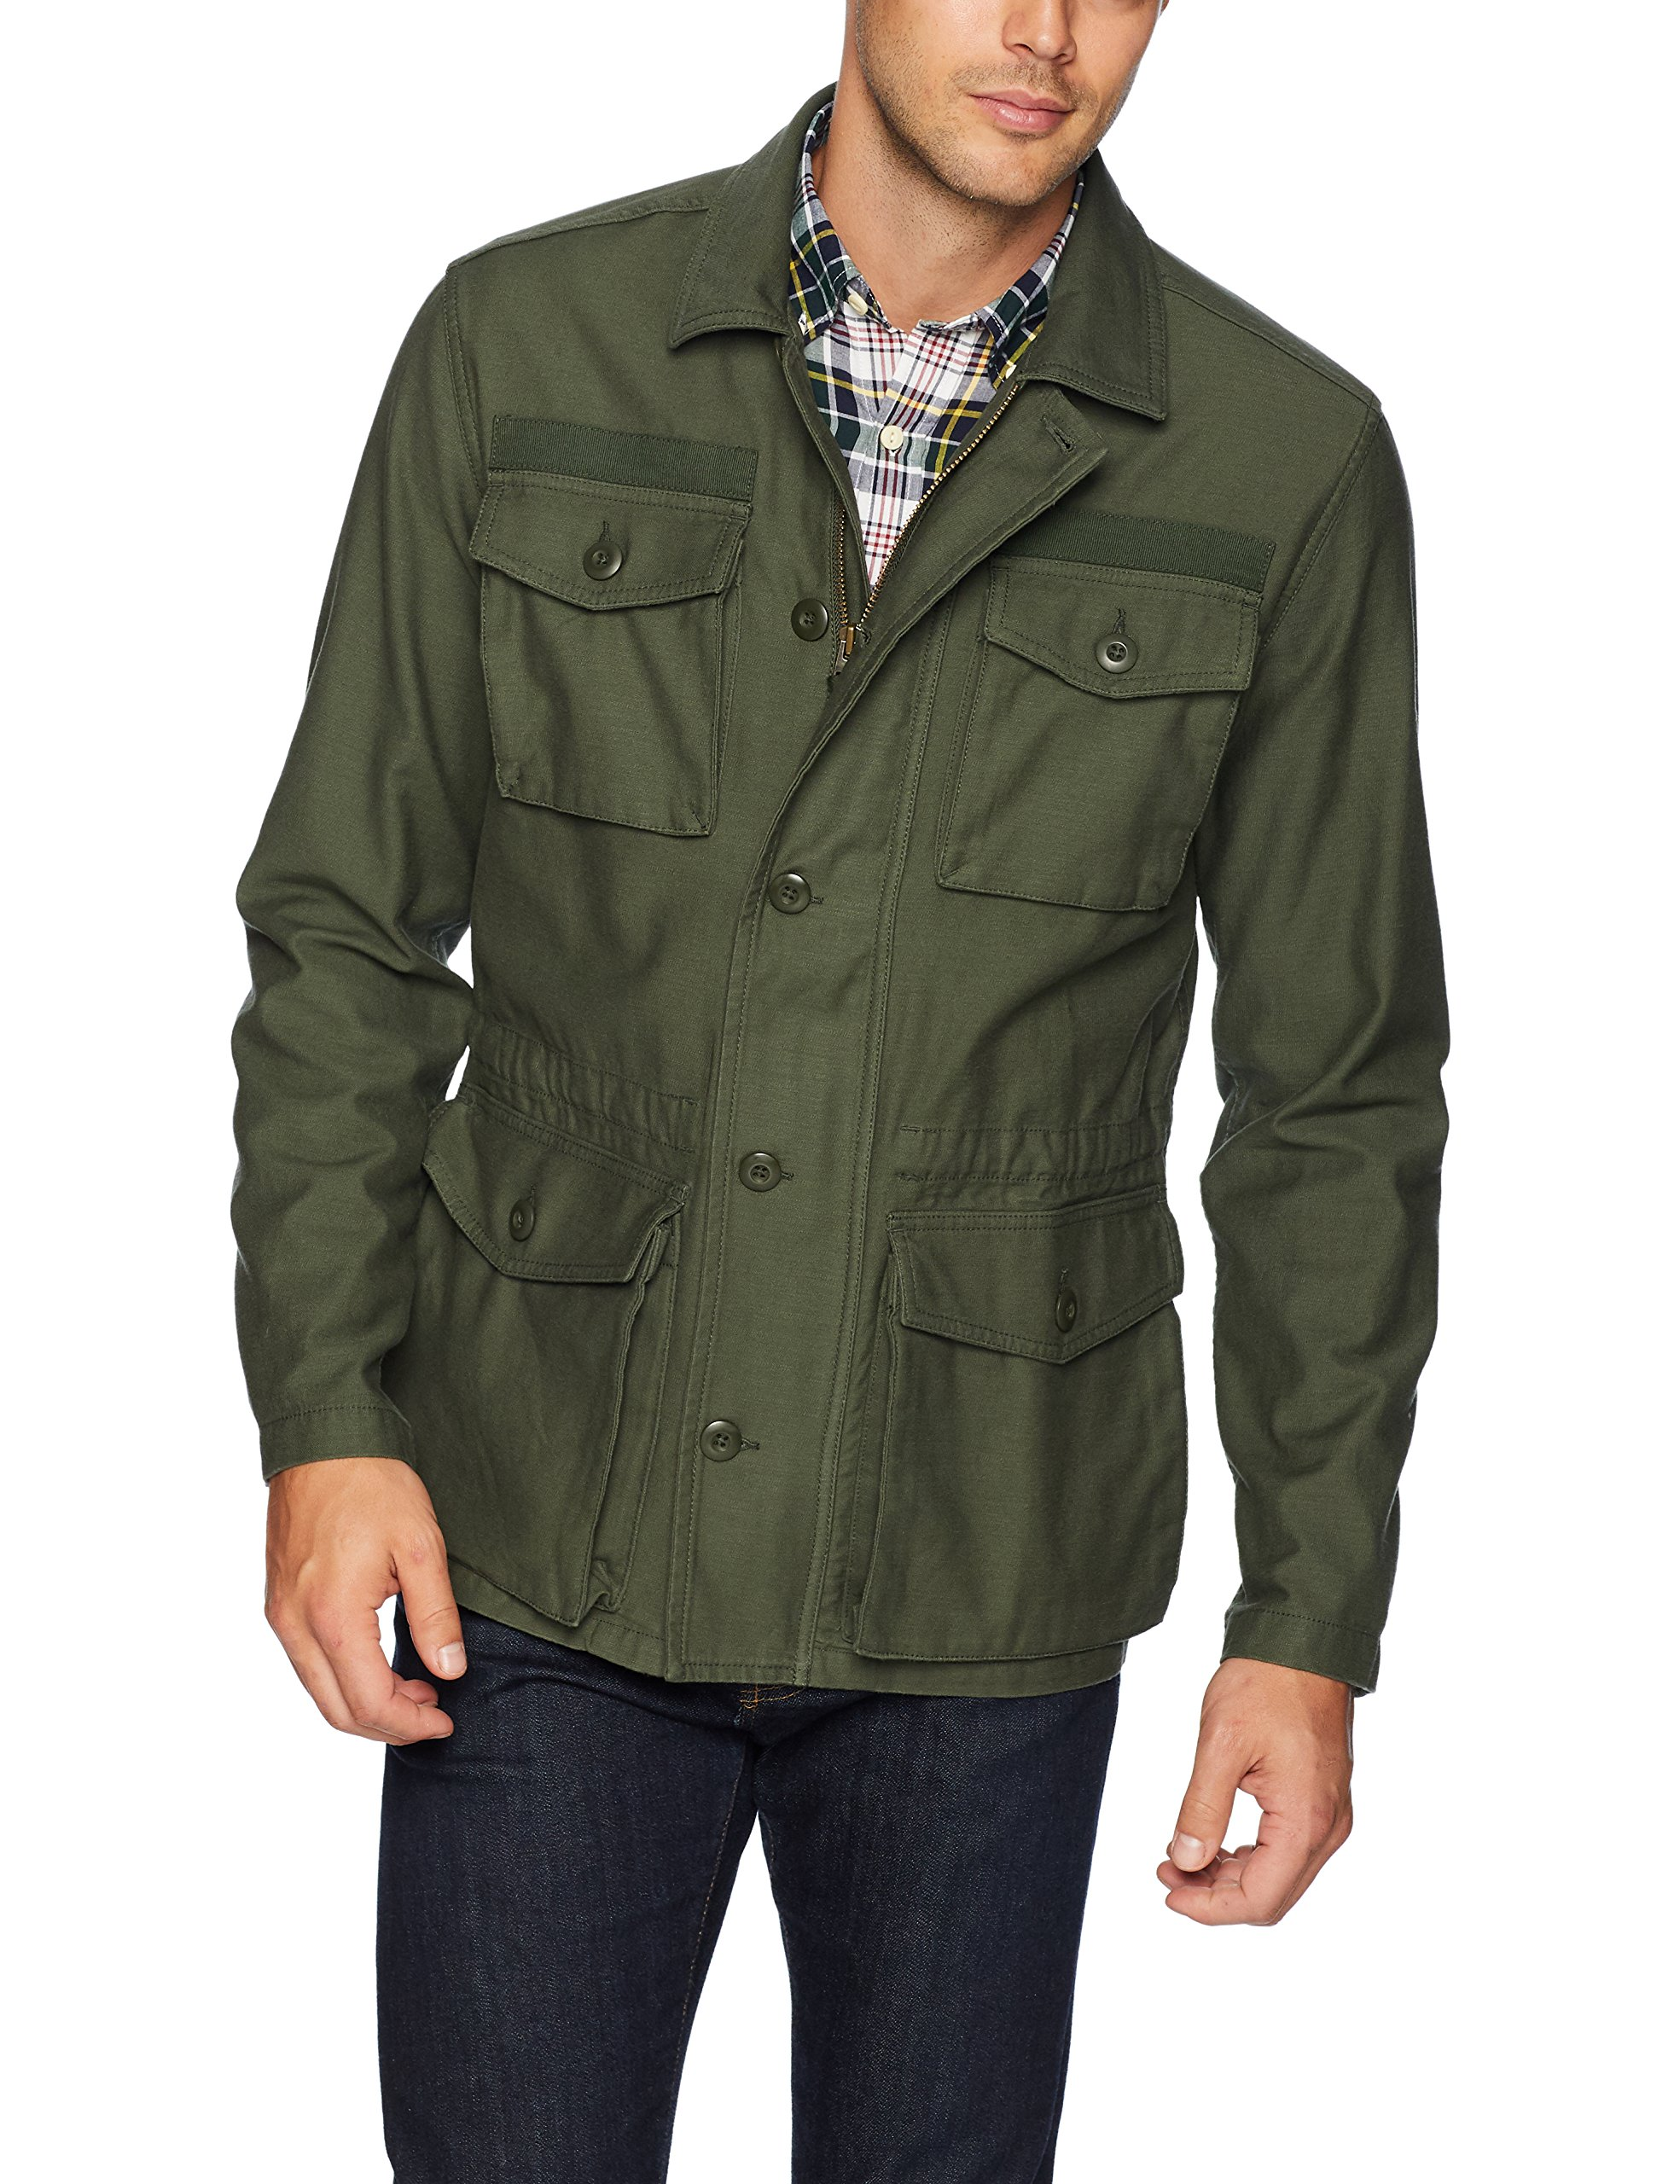 Goodthreads Men's 4-Pocket Military Jacket, Deep Depth/Olive, Small by Goodthreads